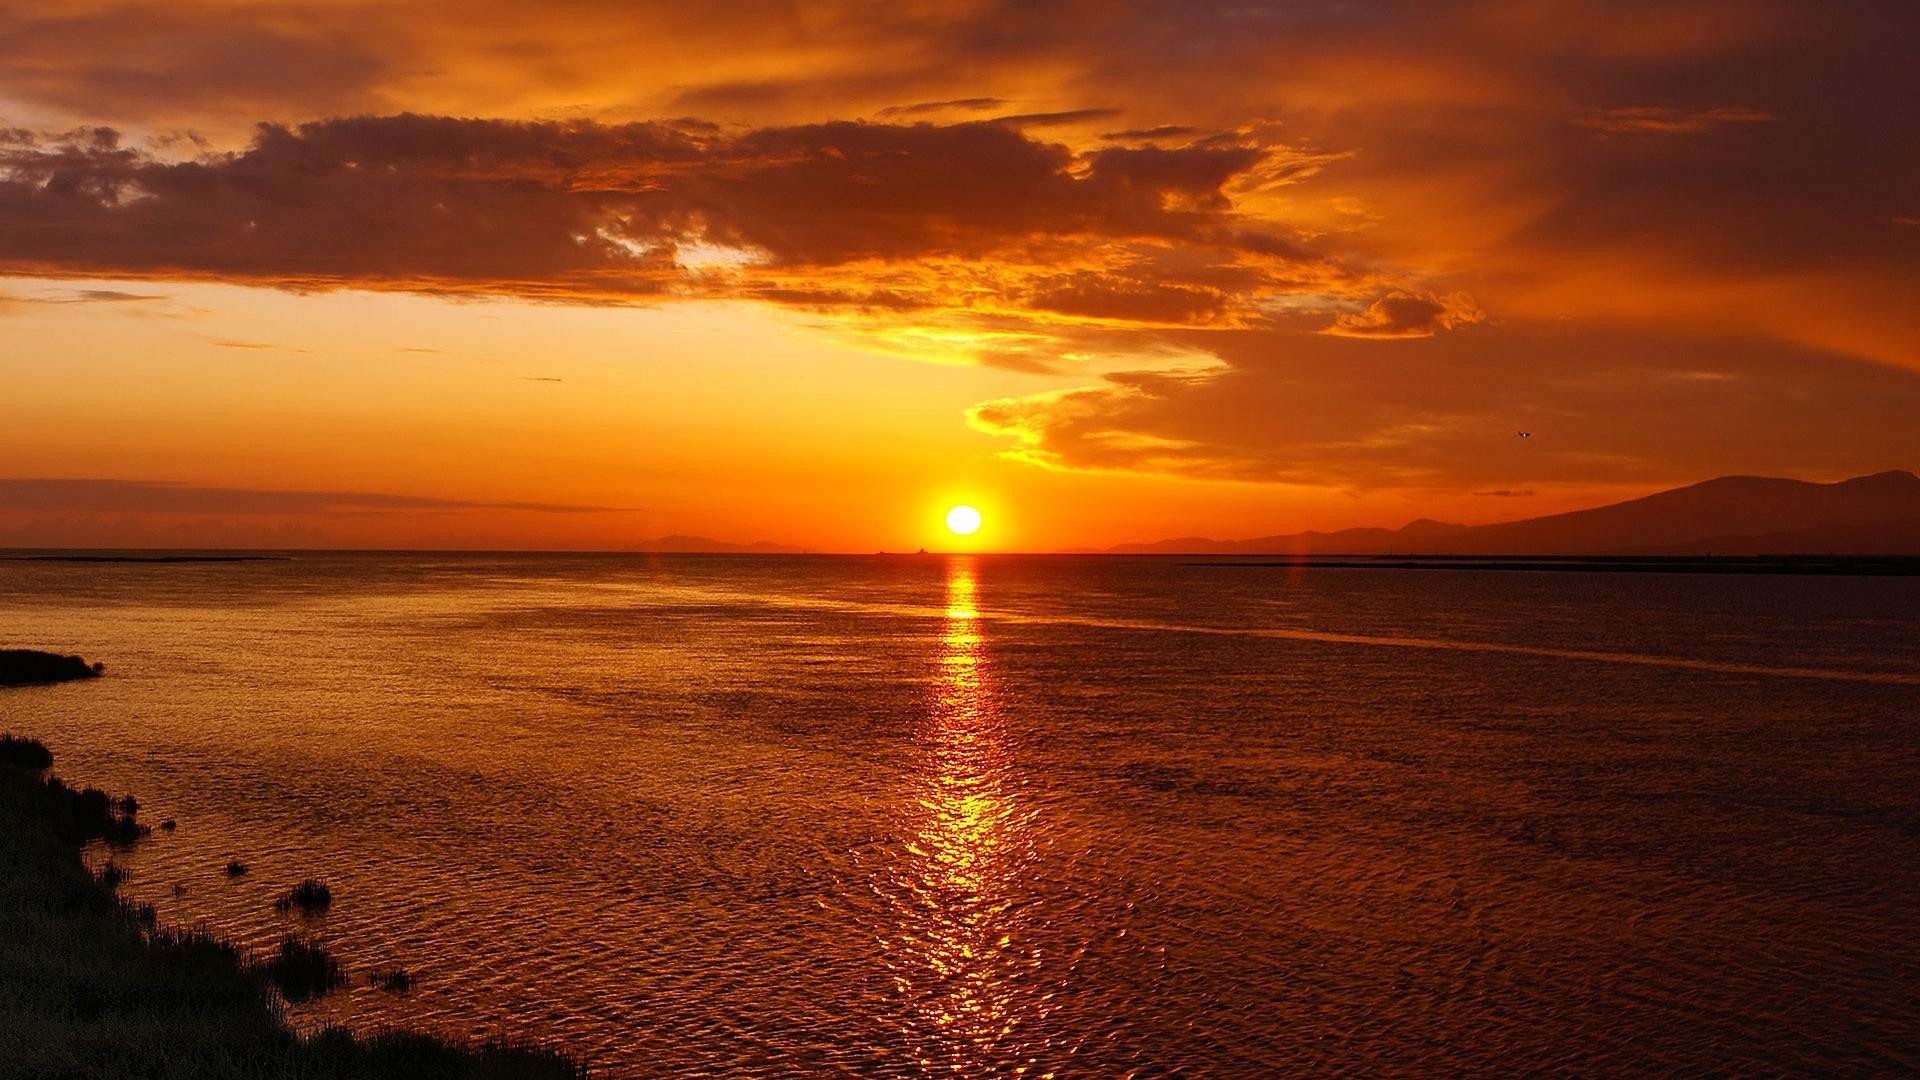 … Sunset Wallpapers HD 0 HTML code. Download 1080P High Definition  Backgrounds